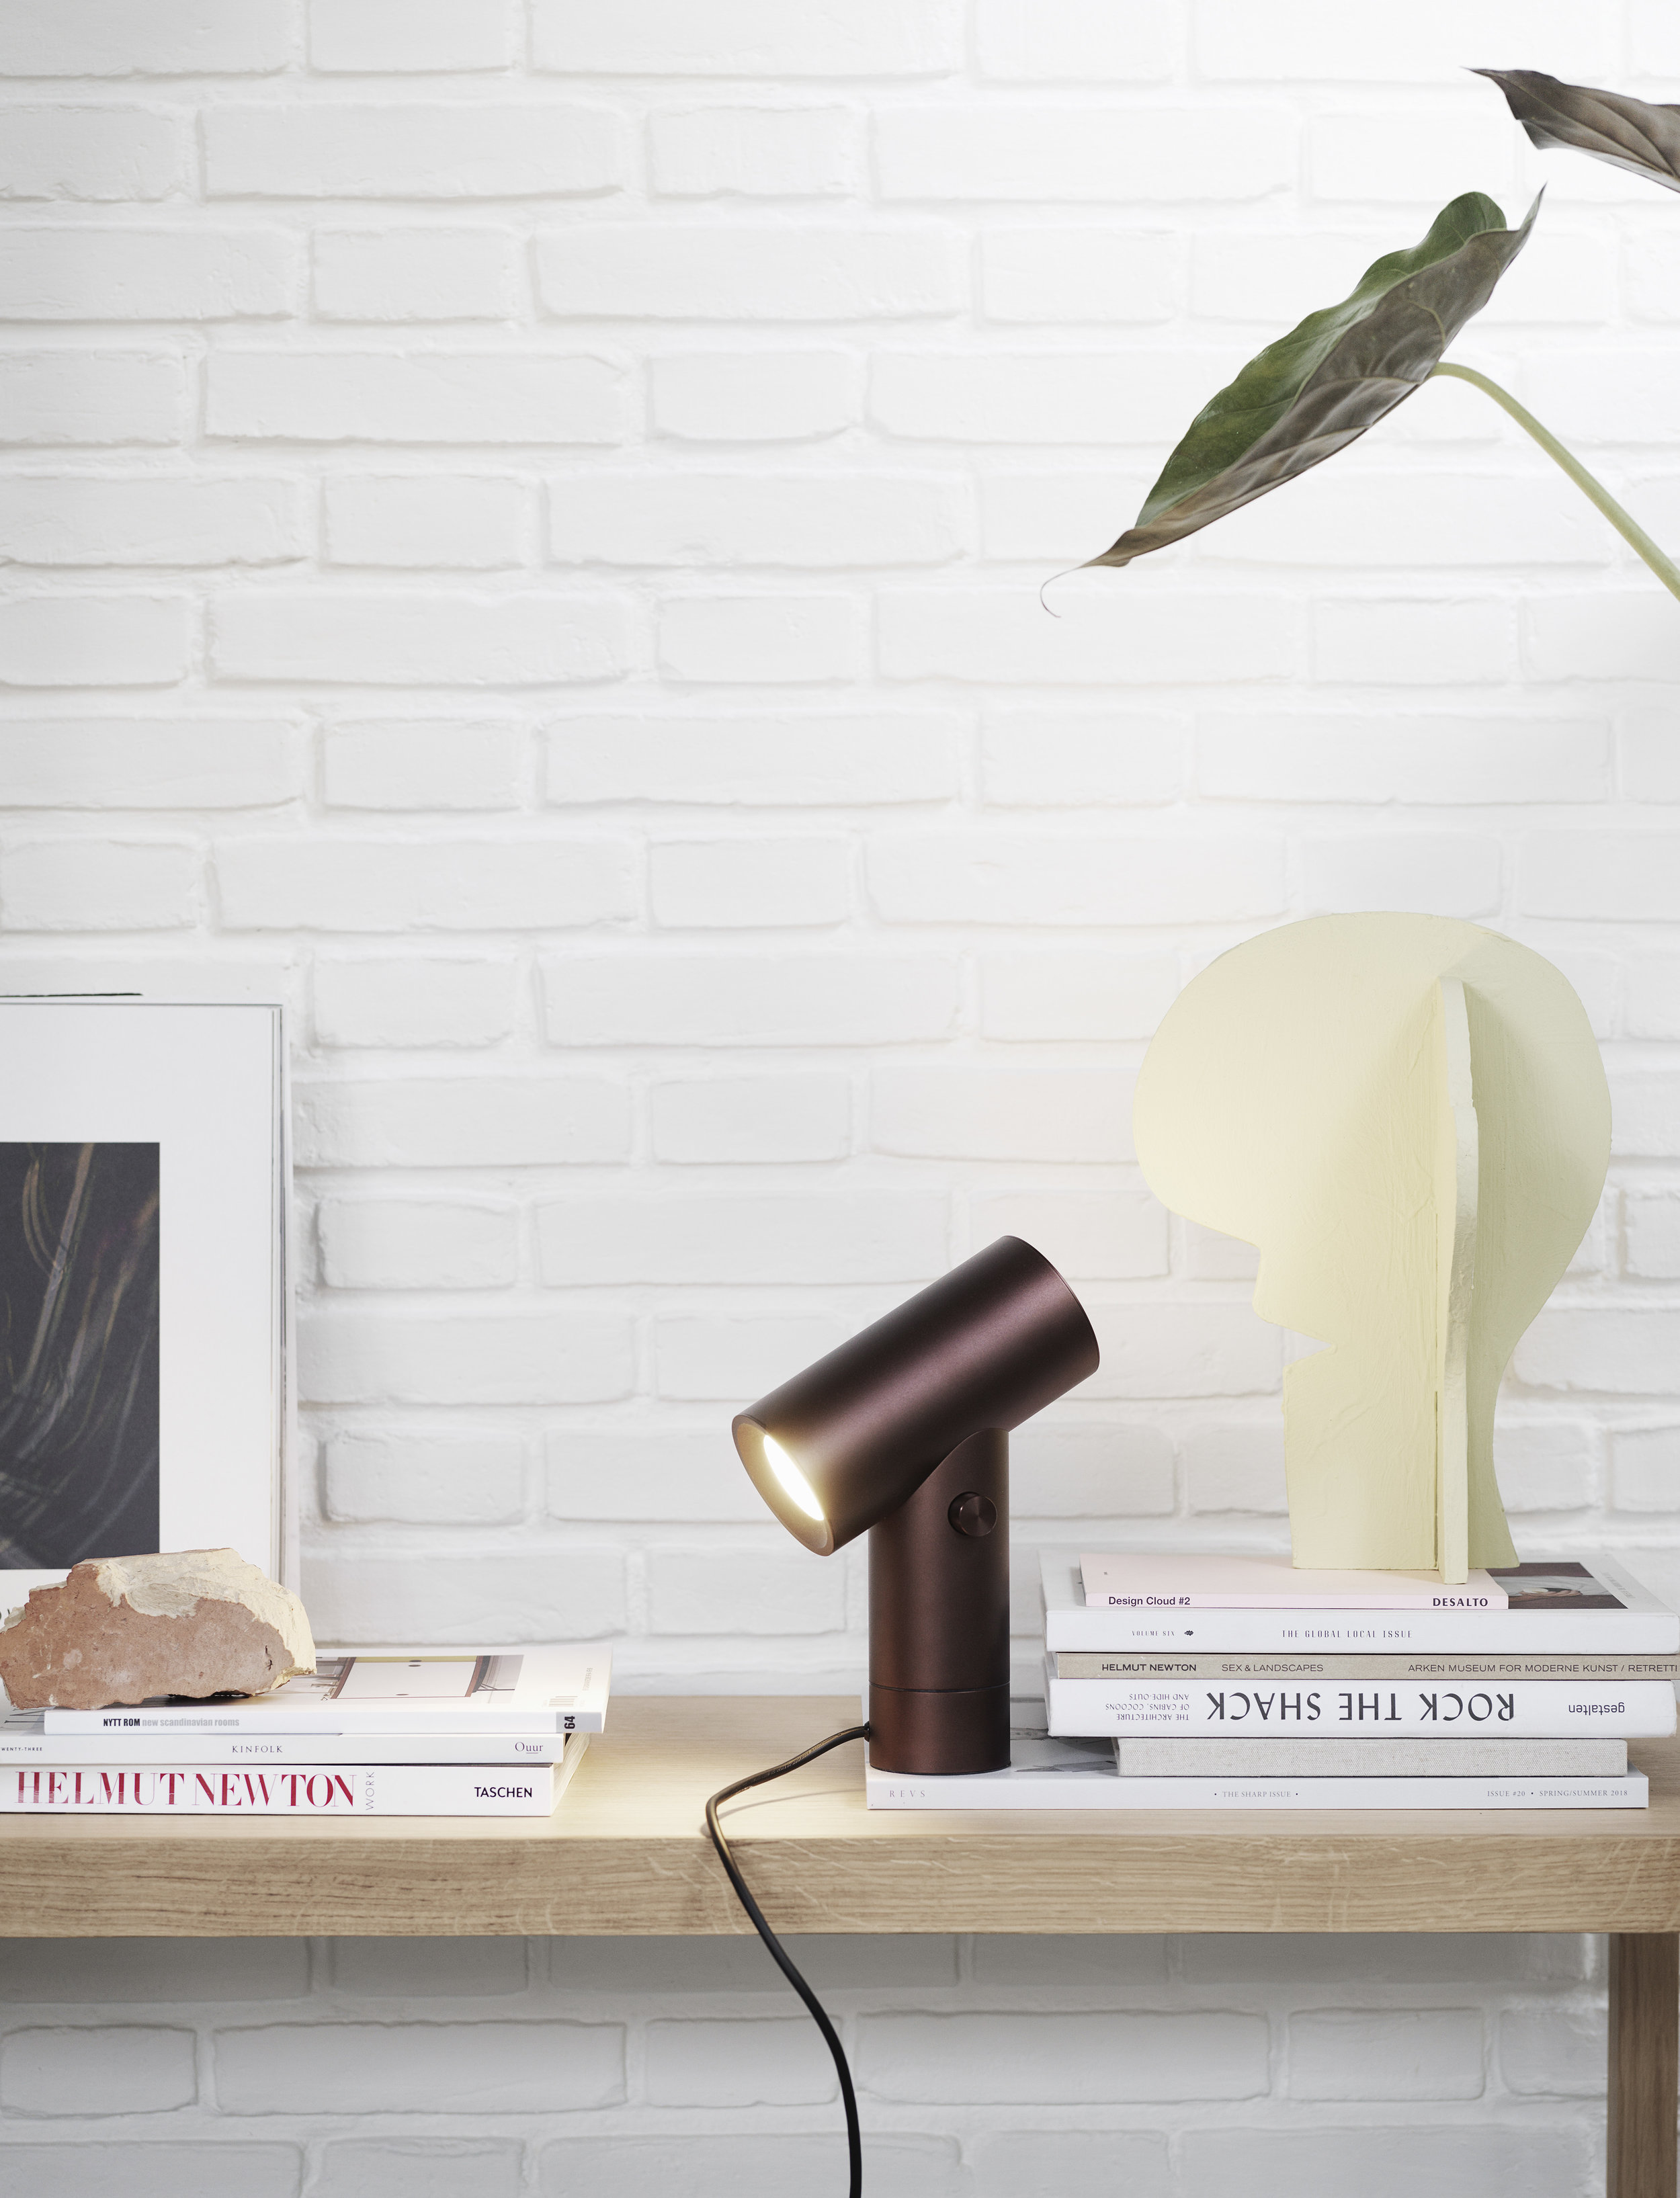 New lamp from Muuto which can shine up, down, or both simaltaneously - and it can swivel, too!